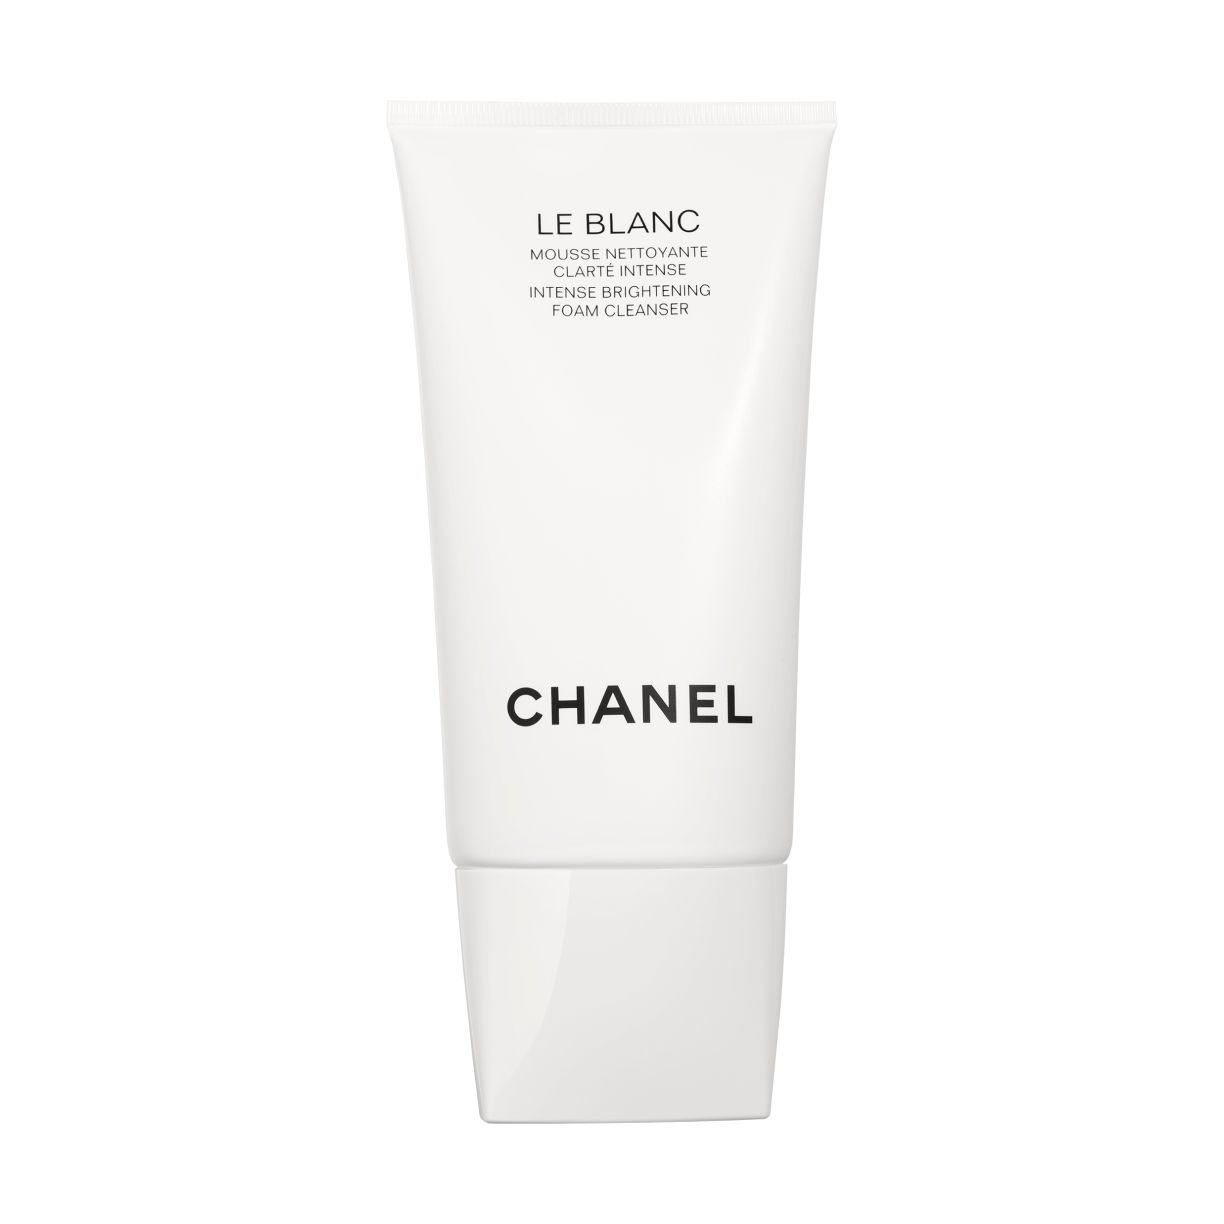 LE BLANC INTENSE BRIGHTENING FOAM CLEANSER TUBE 150ML